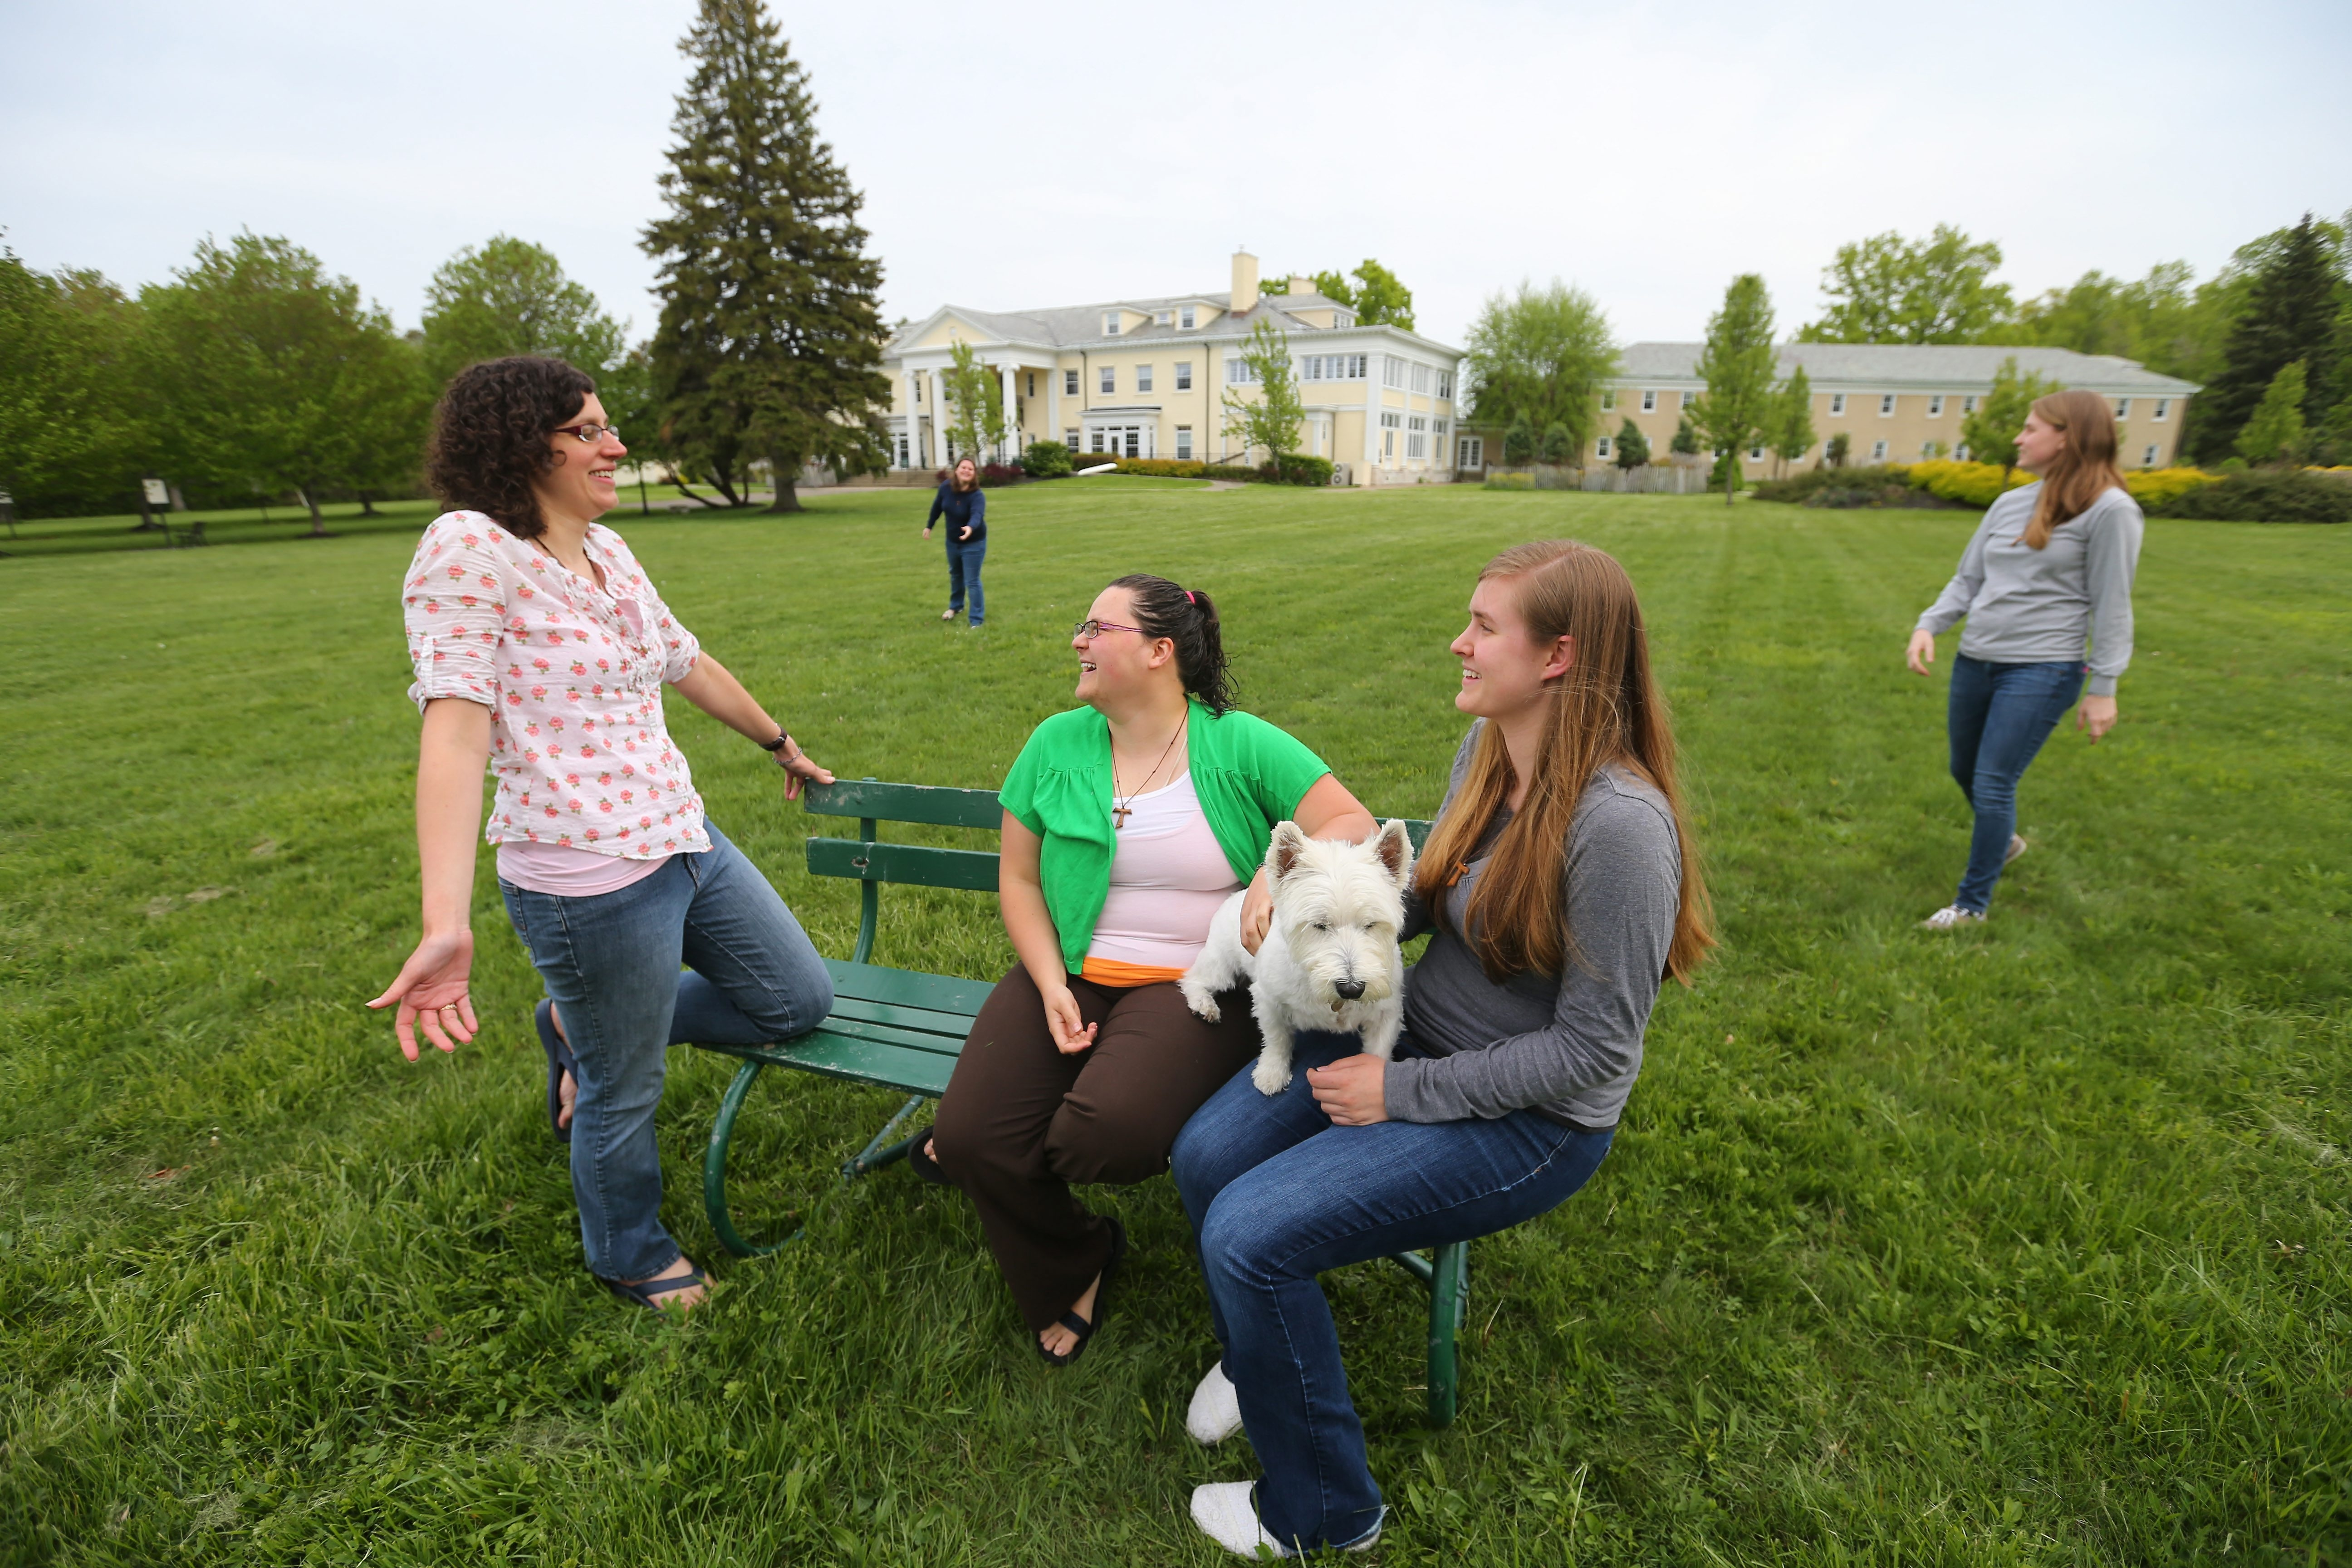 From left, Kristen Leaderstorf, Alycia Murtha, Nicolette Langlois, Catherine Chance and Lindsey Martin enjoy some down time at the St. Columban Center in Derby on May 21. (Mark Mulville/Buffalo News)